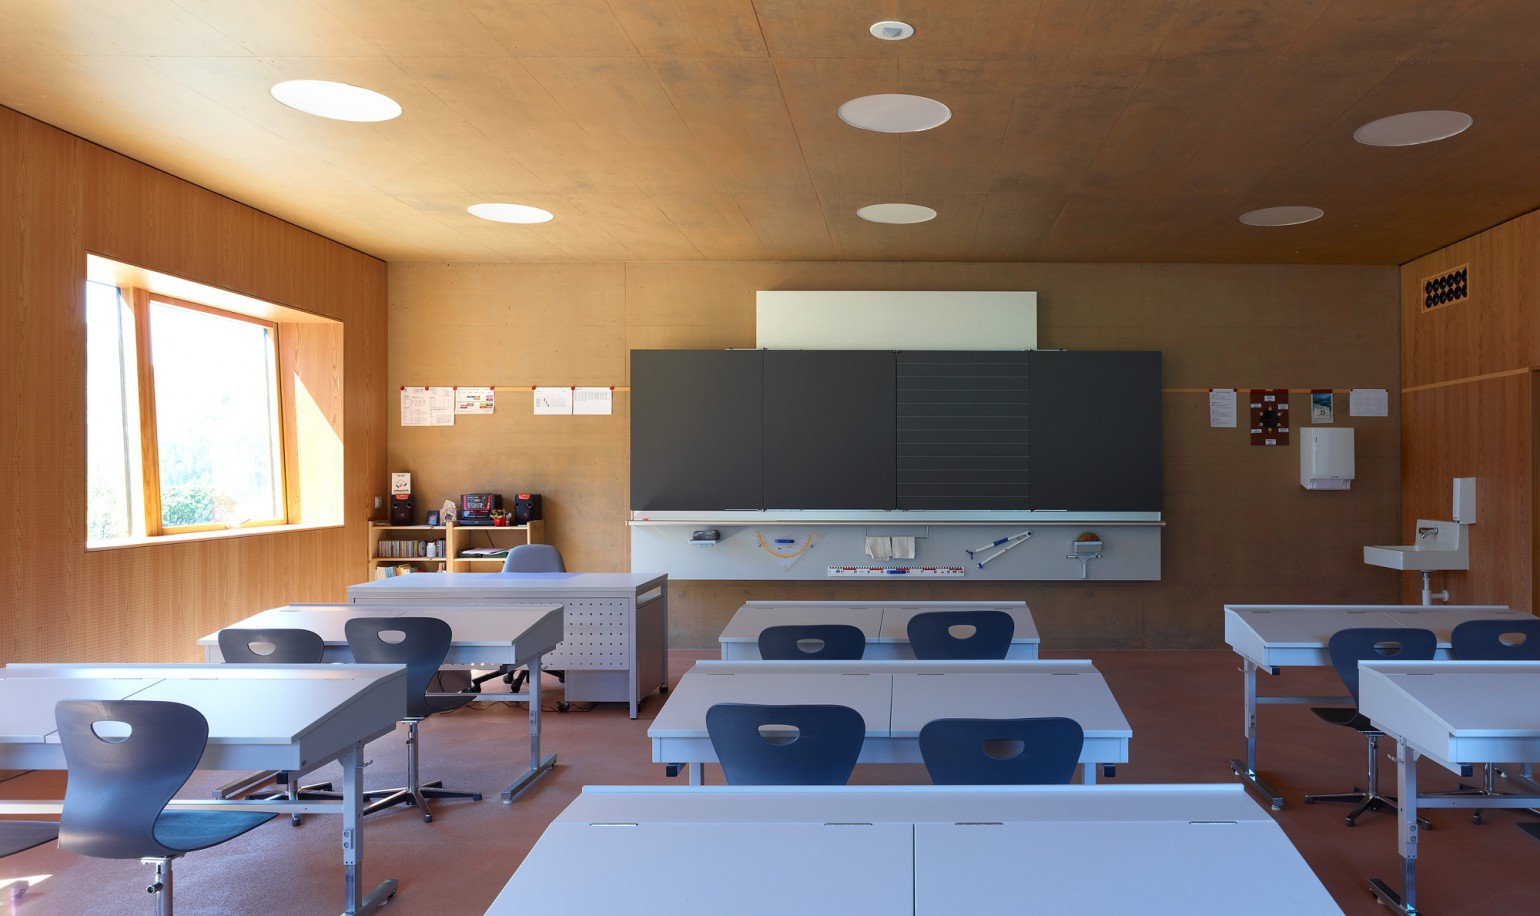 Ecole primaire meyer architecture sion for Ecole decoration interieur